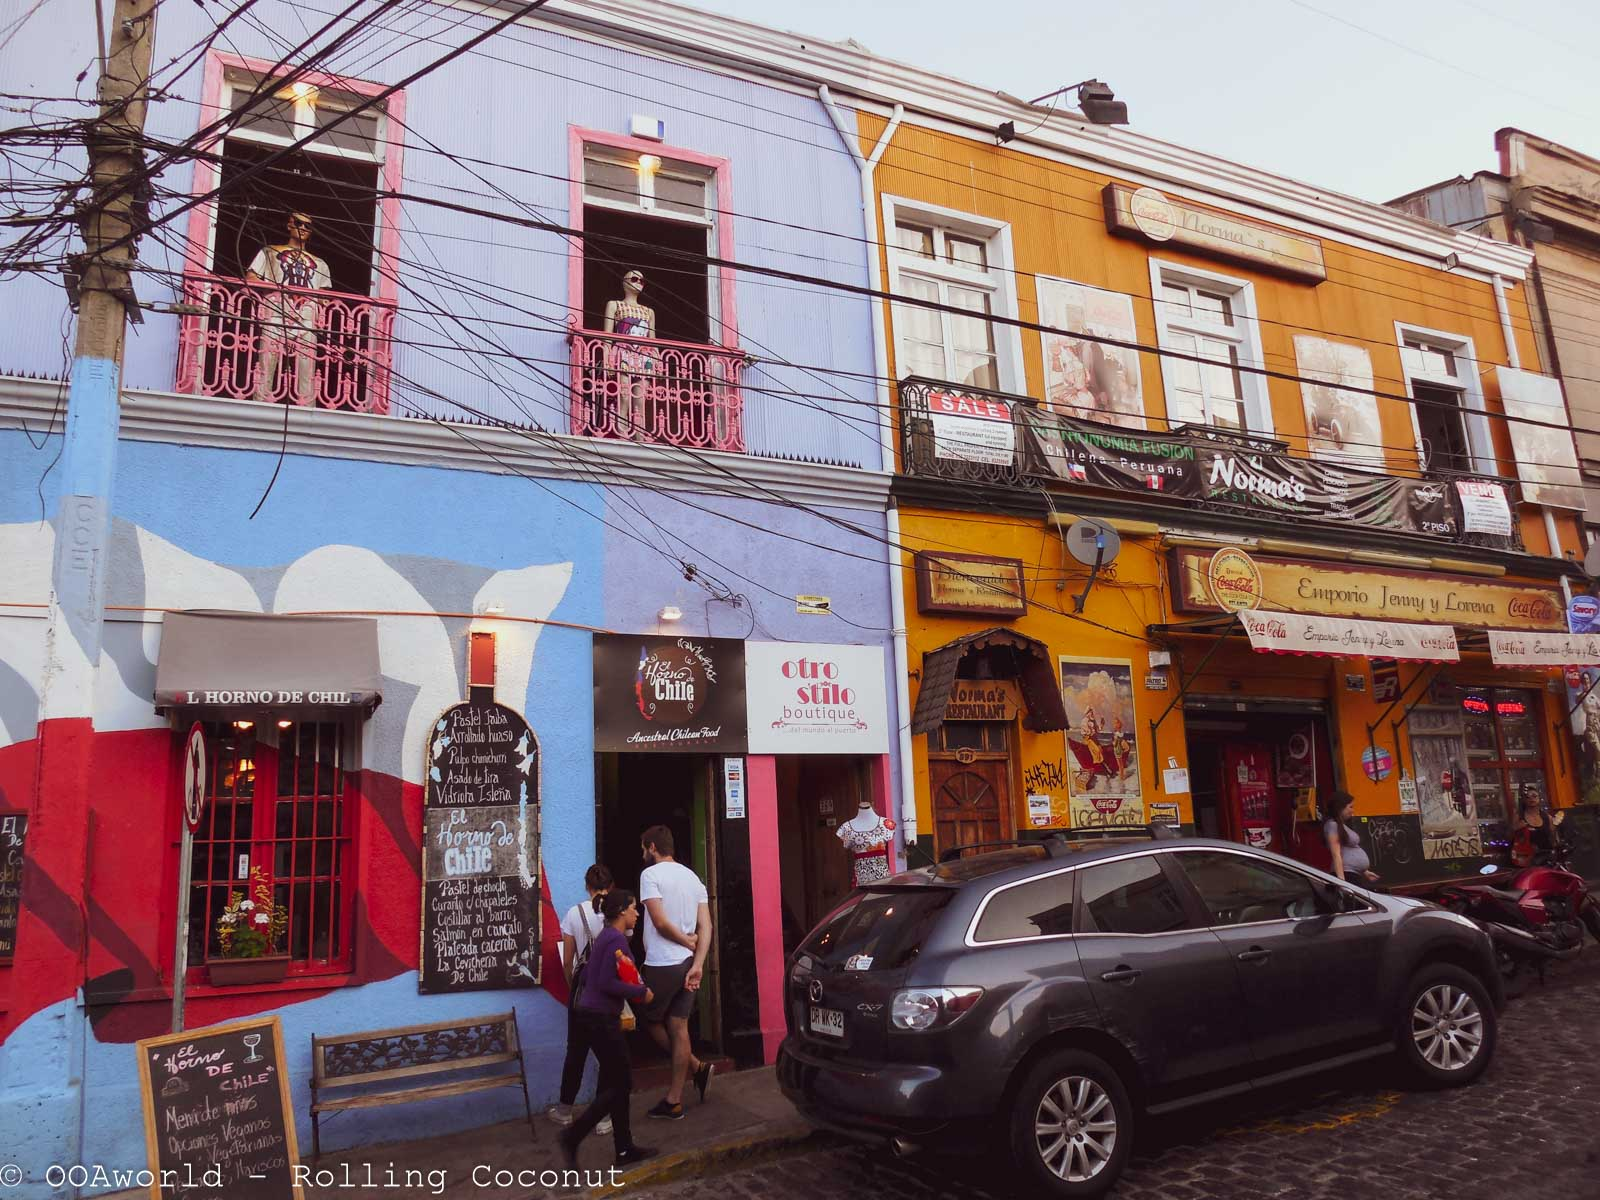 Bars and Shops Valparaiso Chile Photo Ooaworld Rolling Coconut